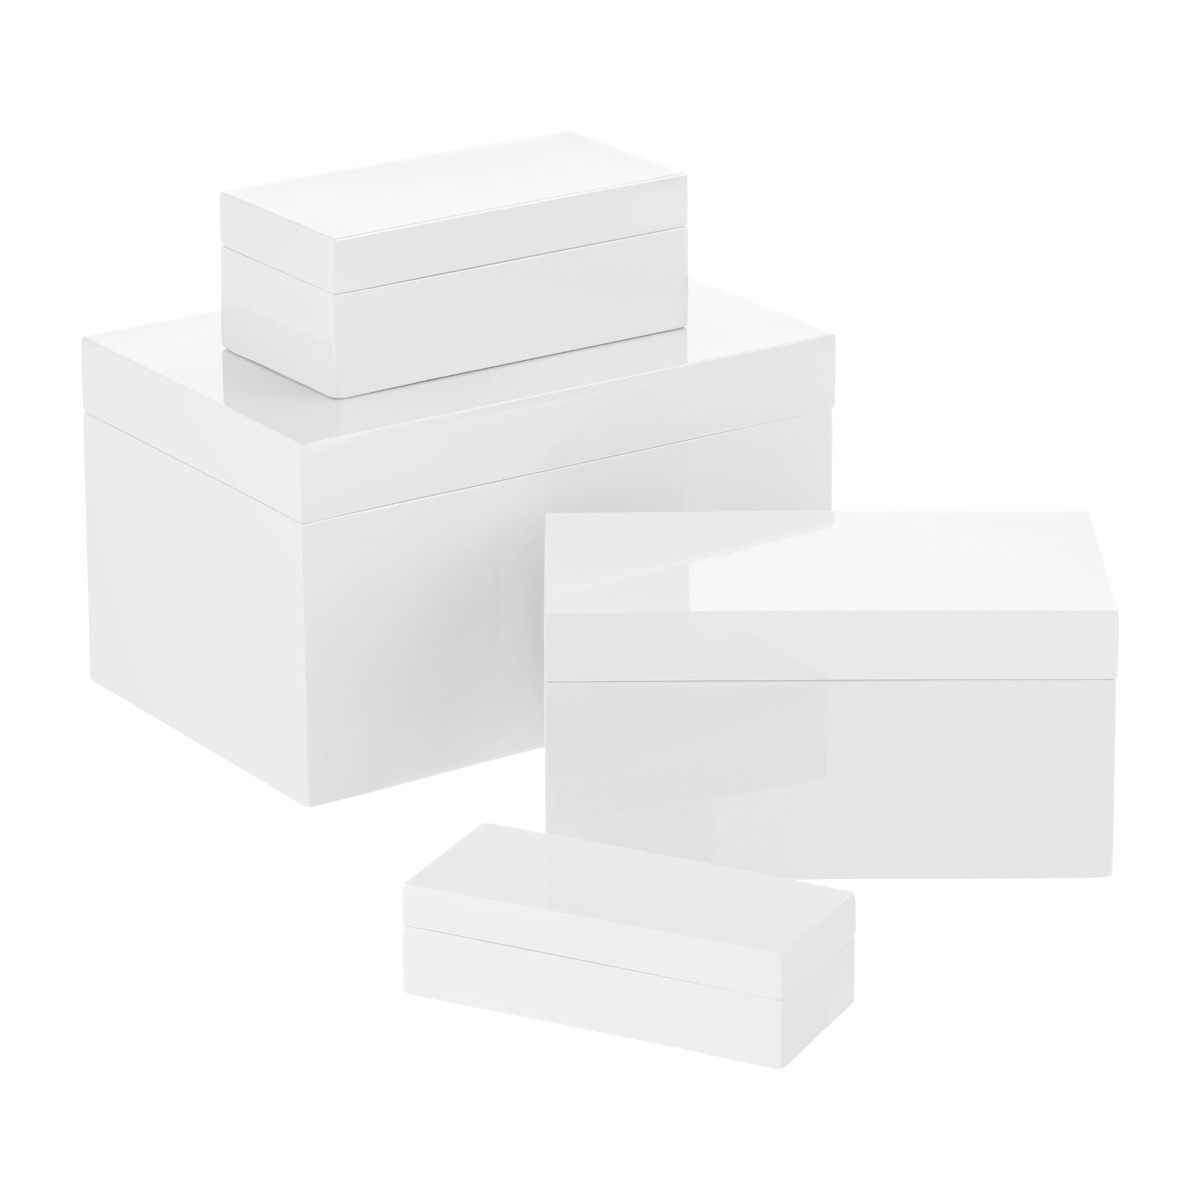 Charmant White Lacquered Storage Boxes